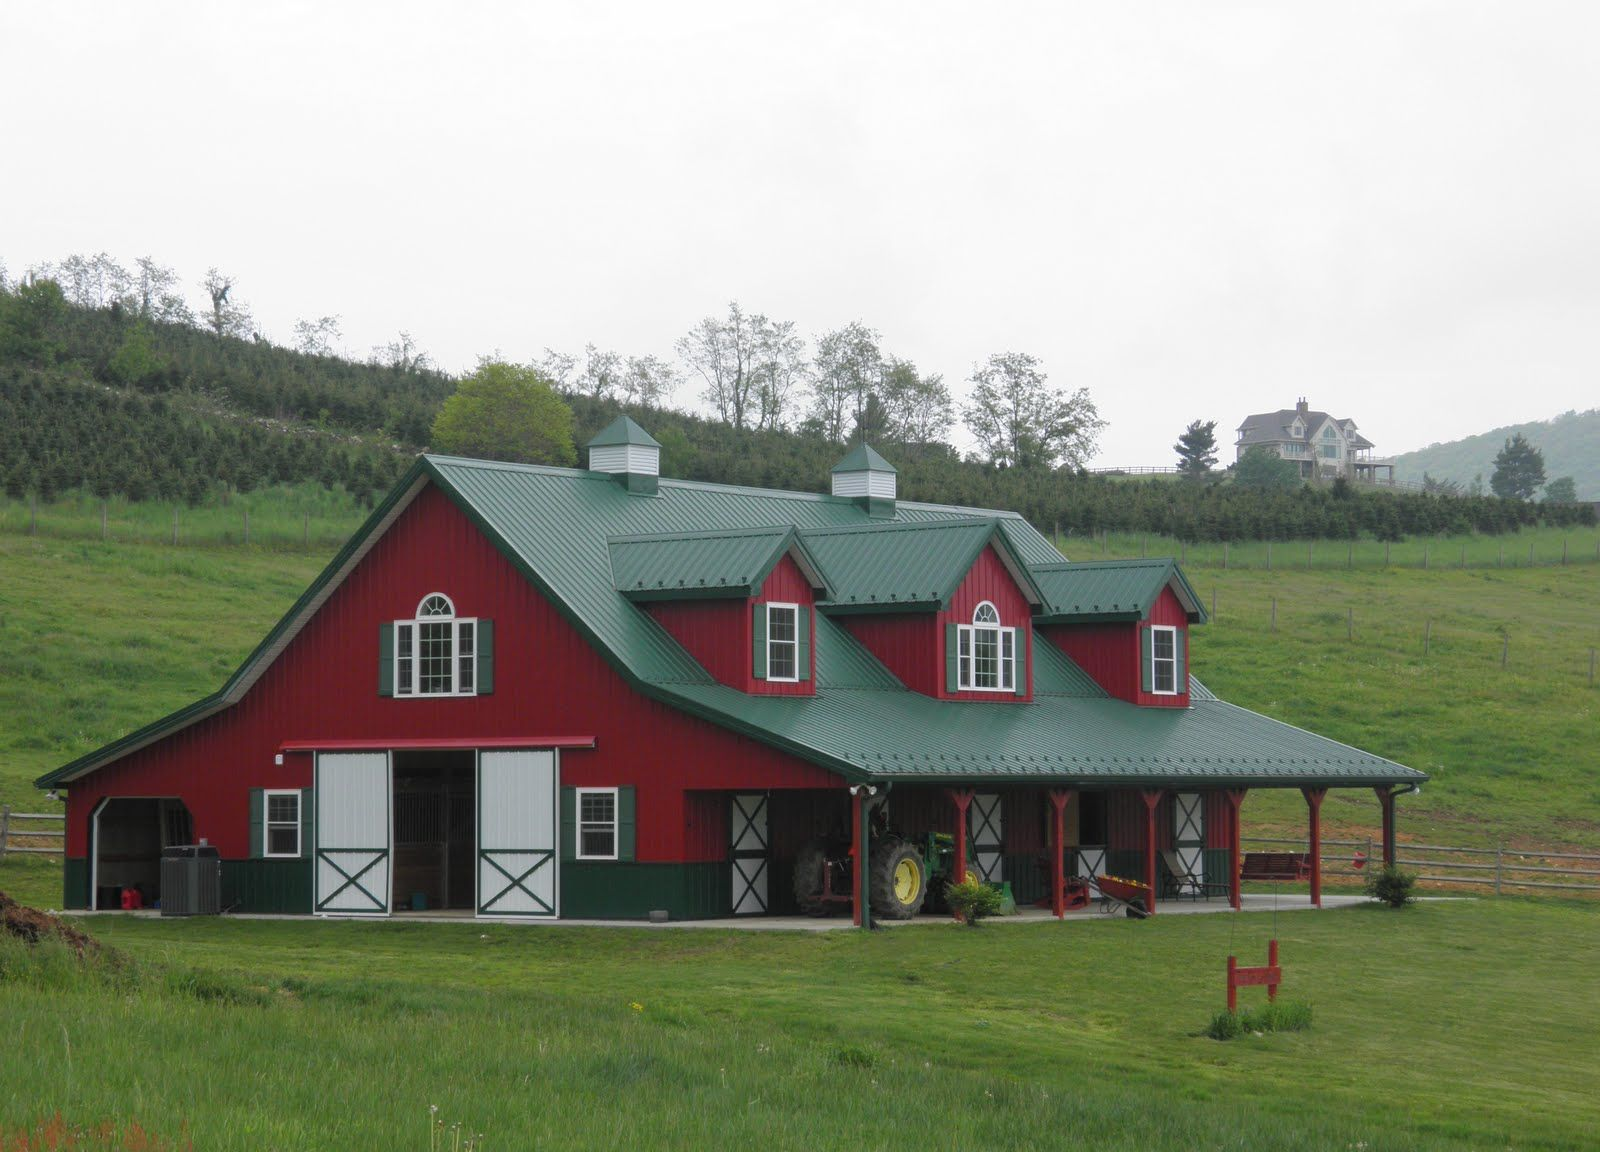 House that looks like red barn images at home in the for Metal pole barn homes plans